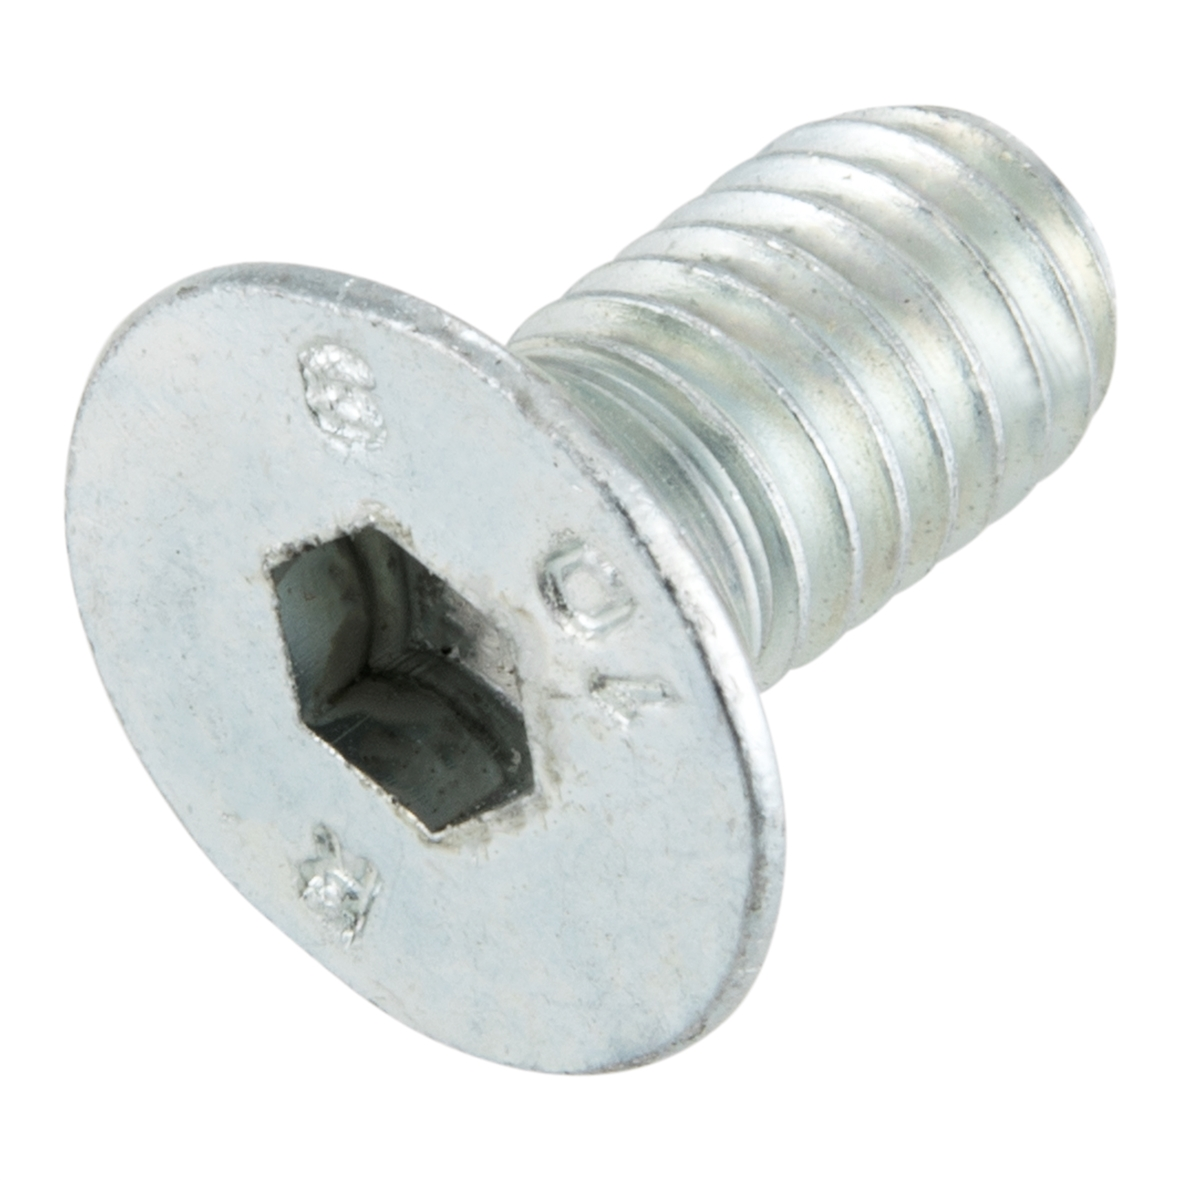 Product Image for 'Screw M6x12 mm, inner hexagonal, counter sunk screw, PIAGGIOTitle'